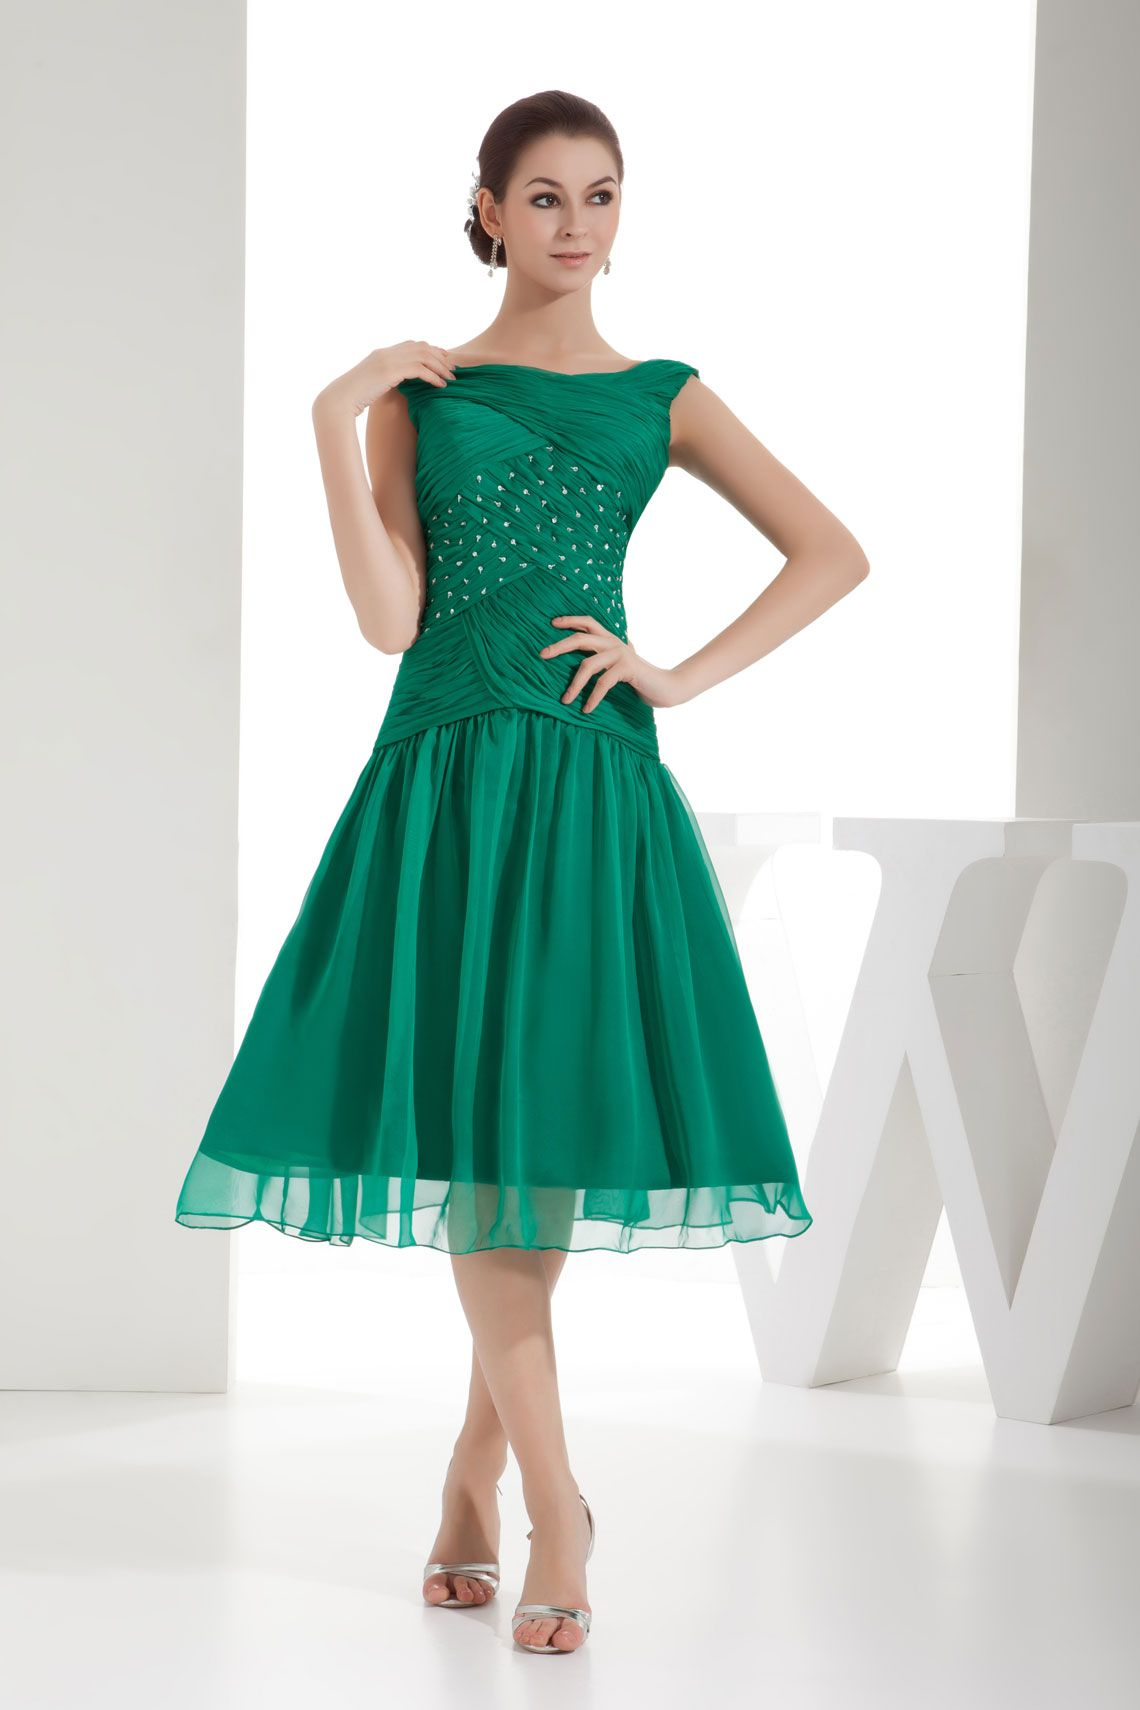 Green dress ideas  Great Bridesmaides dressesVisit us at brides book for all your